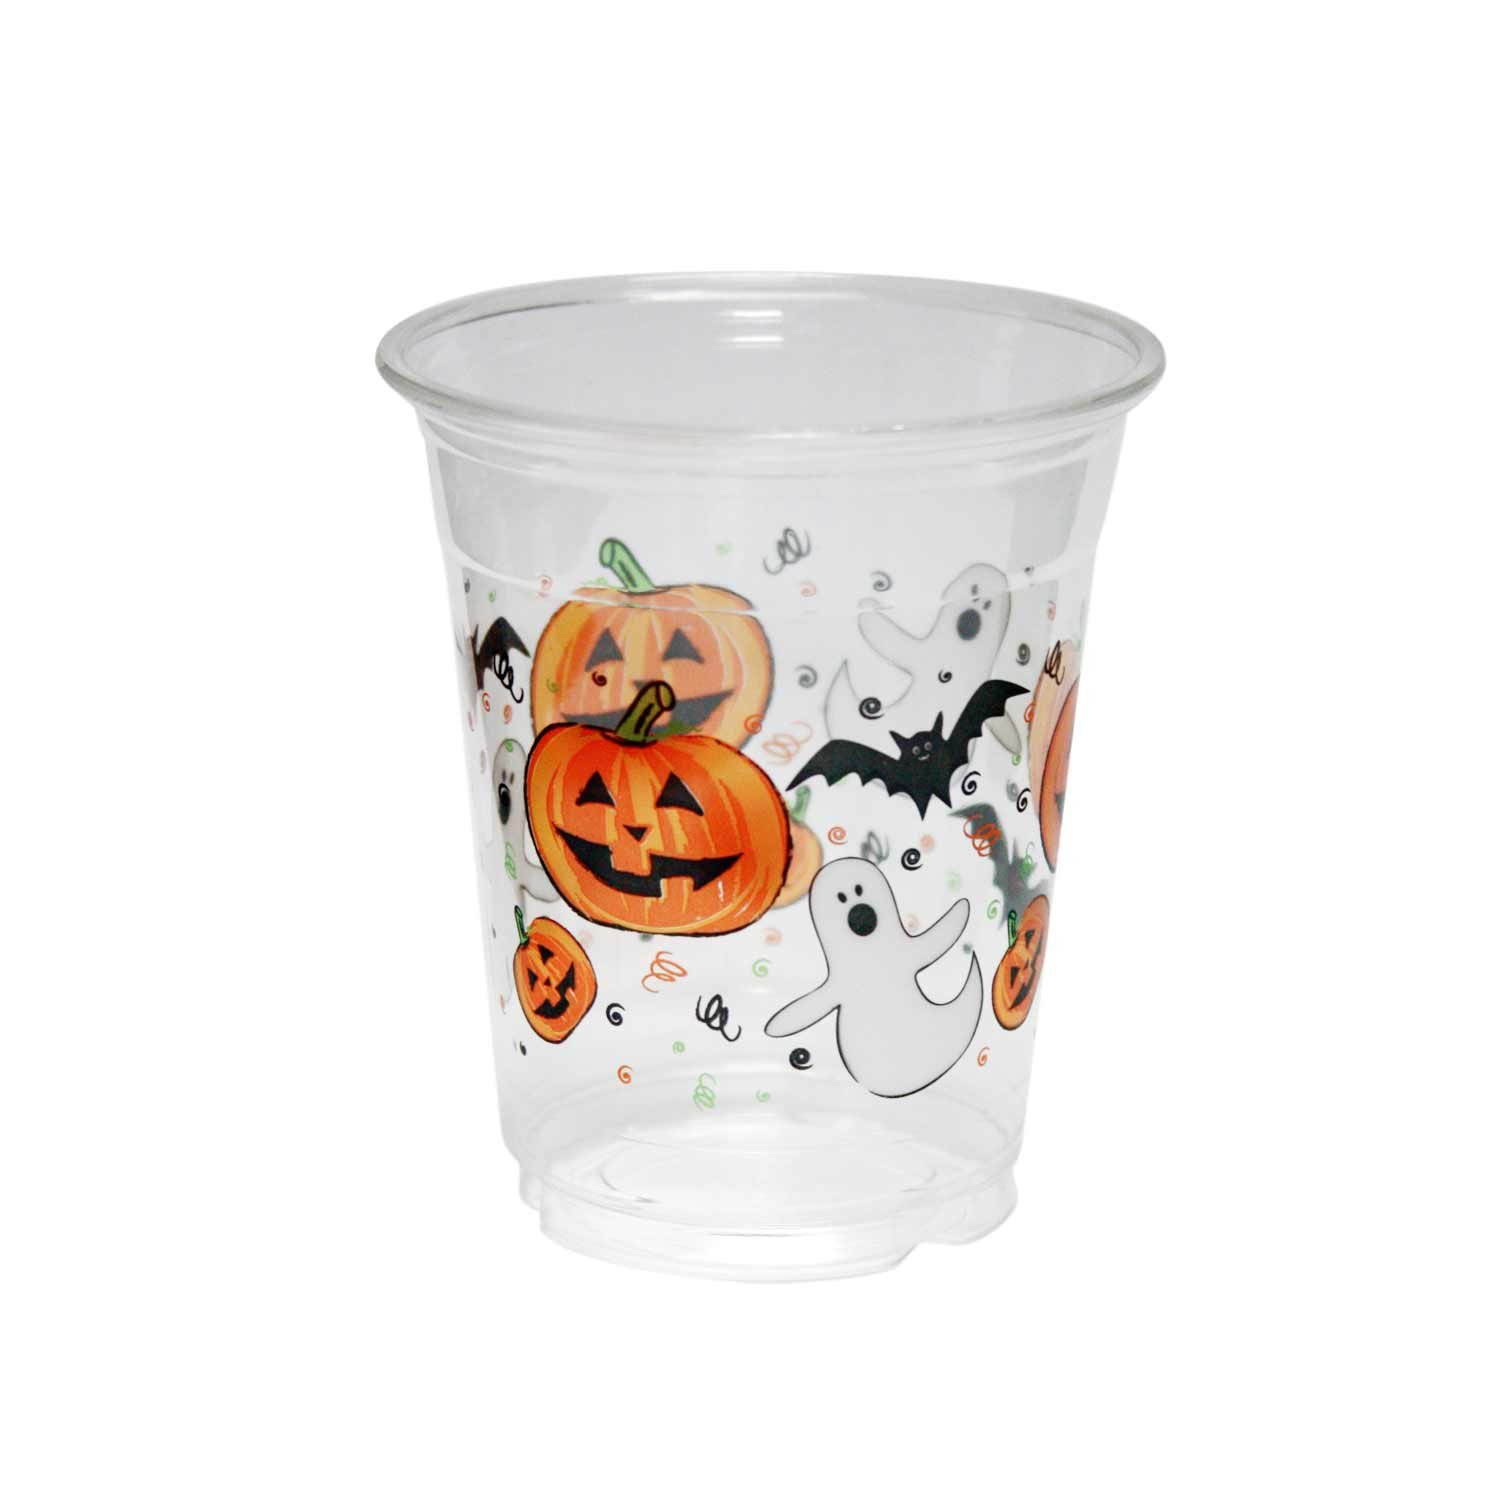 Party Essentials Soft Plastic Printed Party Cups, 12-Ounce, Halloween, 20-Count